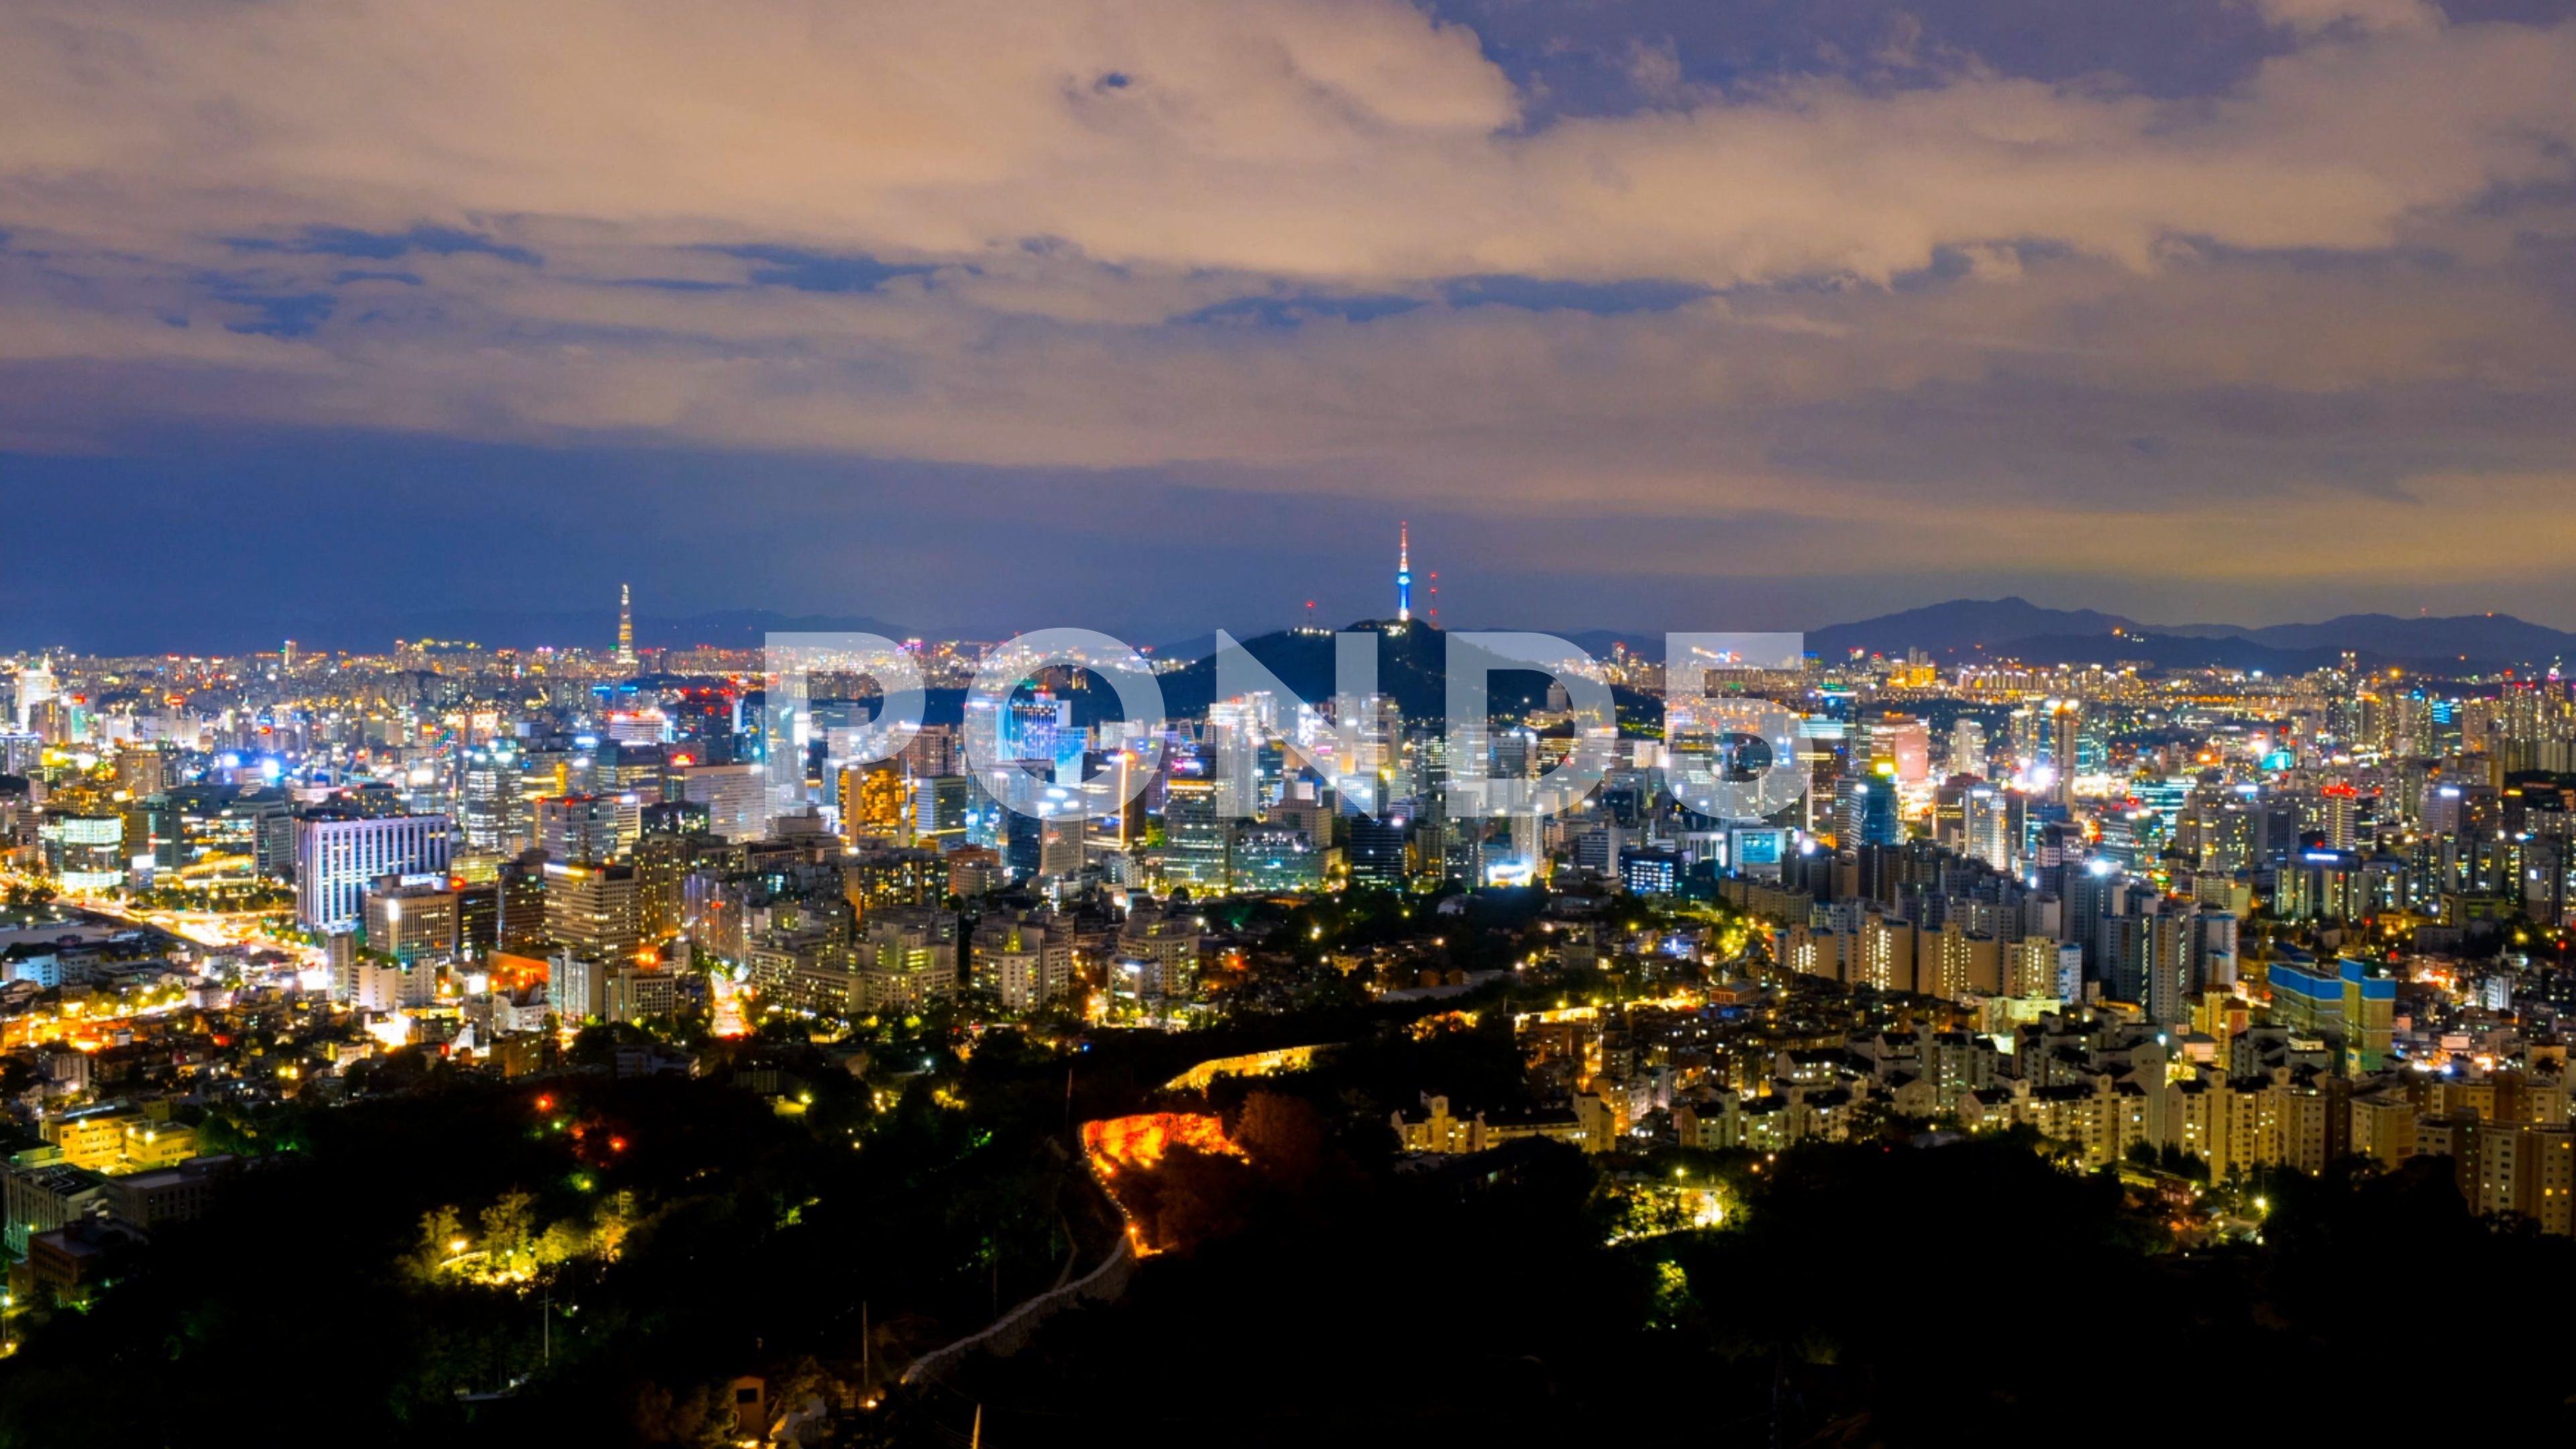 Time lapse of Seoul City Skyline,South Korea  Stock Footage,#Seoul